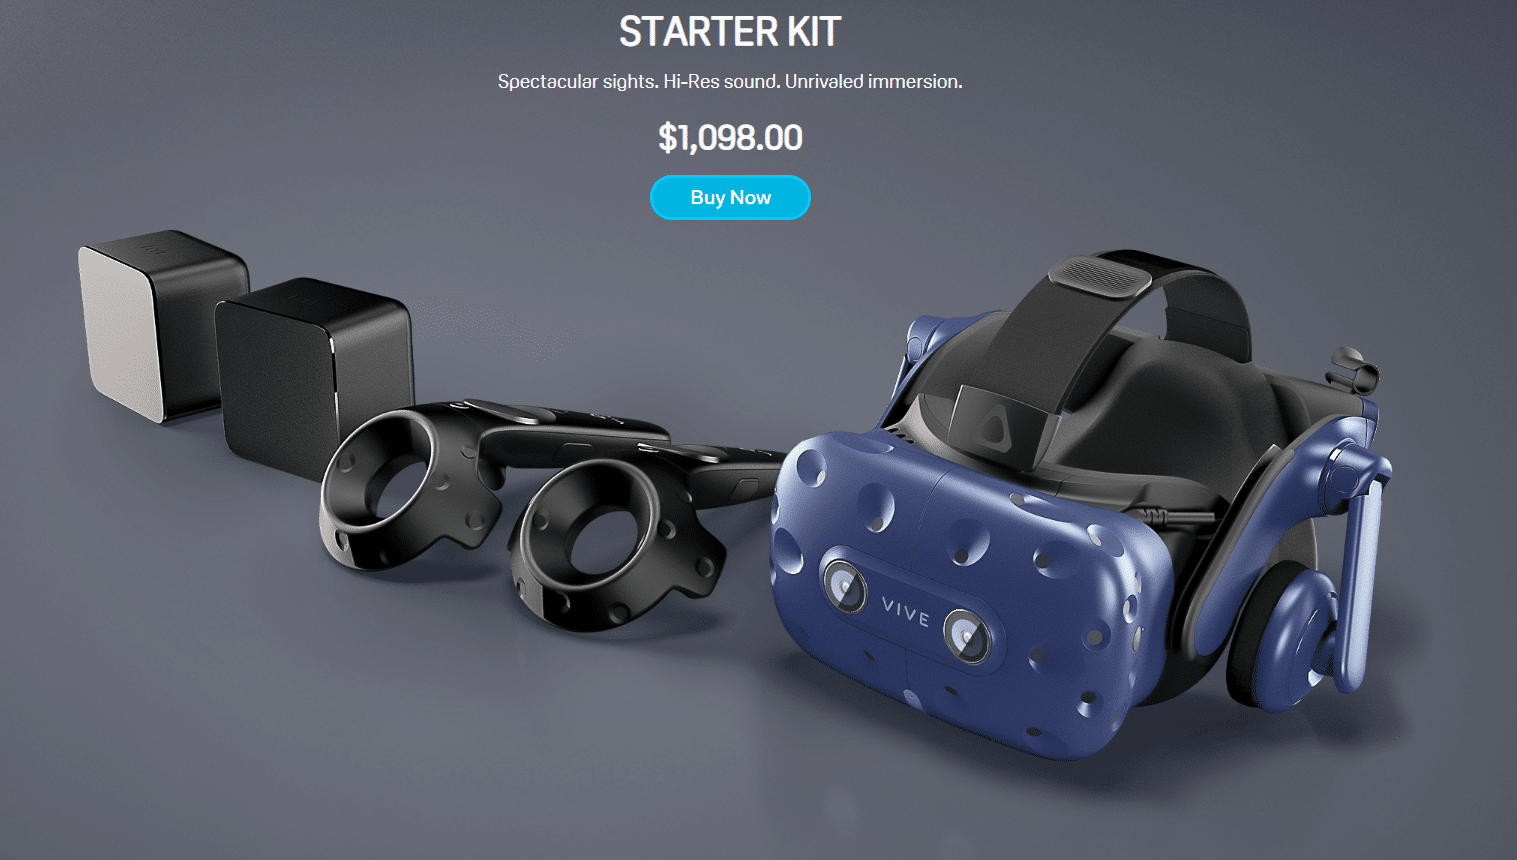 Webmains Save $230 with the Vive Pro Starter Kit and Accessory Bundle  %site_name, %title